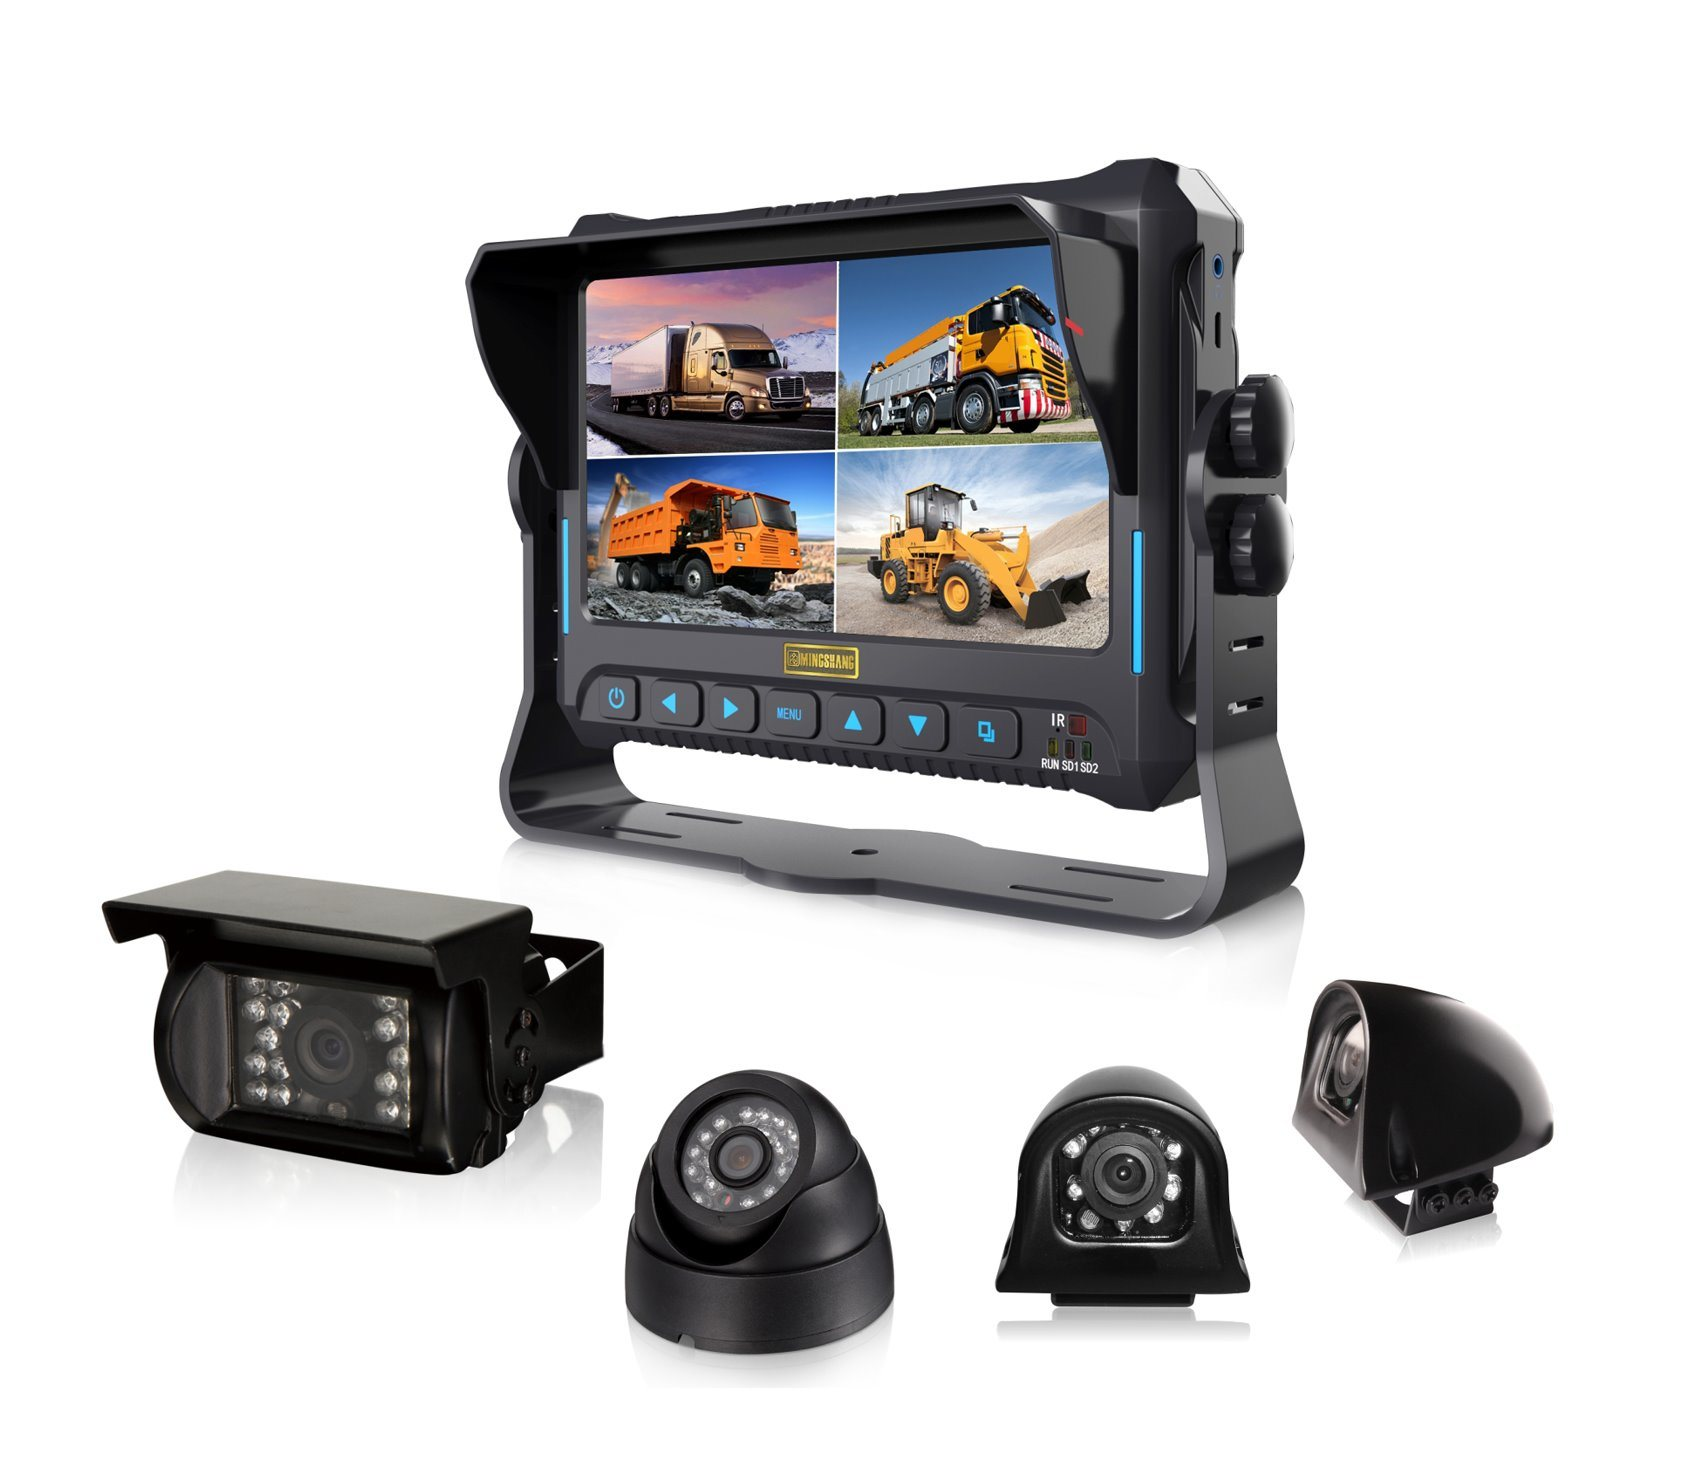 4CH 1080P Mobile DVR with 7 Inches HD Monitor